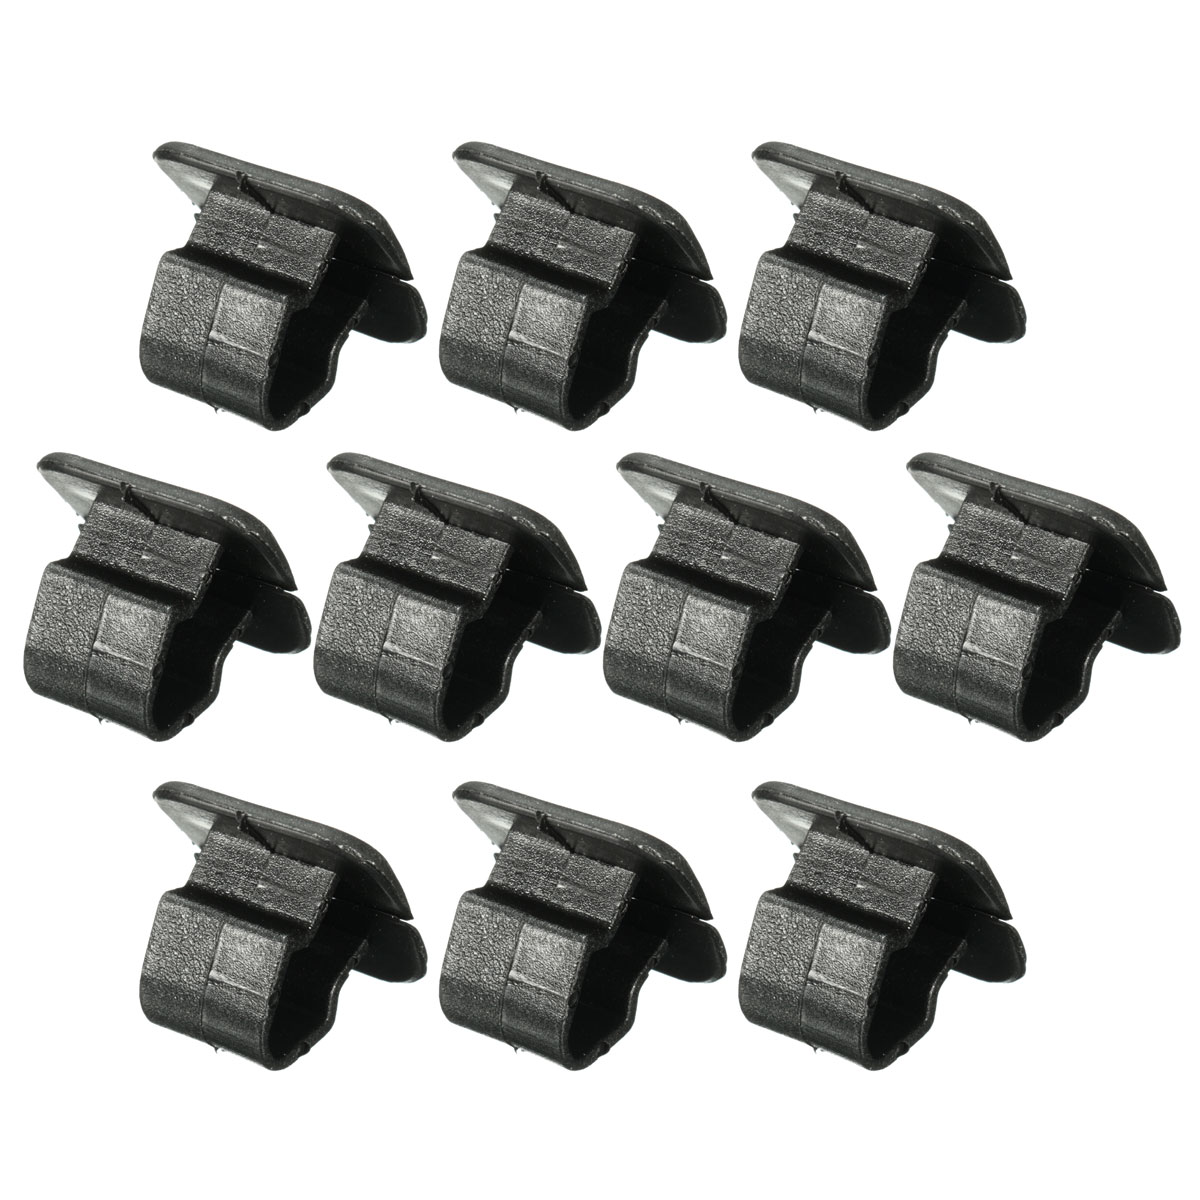 10pcs hood insulation plastic retainer bonnet holder pad clip for 10pcs hood insulation plastic retainer bonnet holder pad clip for vw 1h5863849a01c in auto fastener clip from automobiles motorcycles on aliexpress sciox Image collections